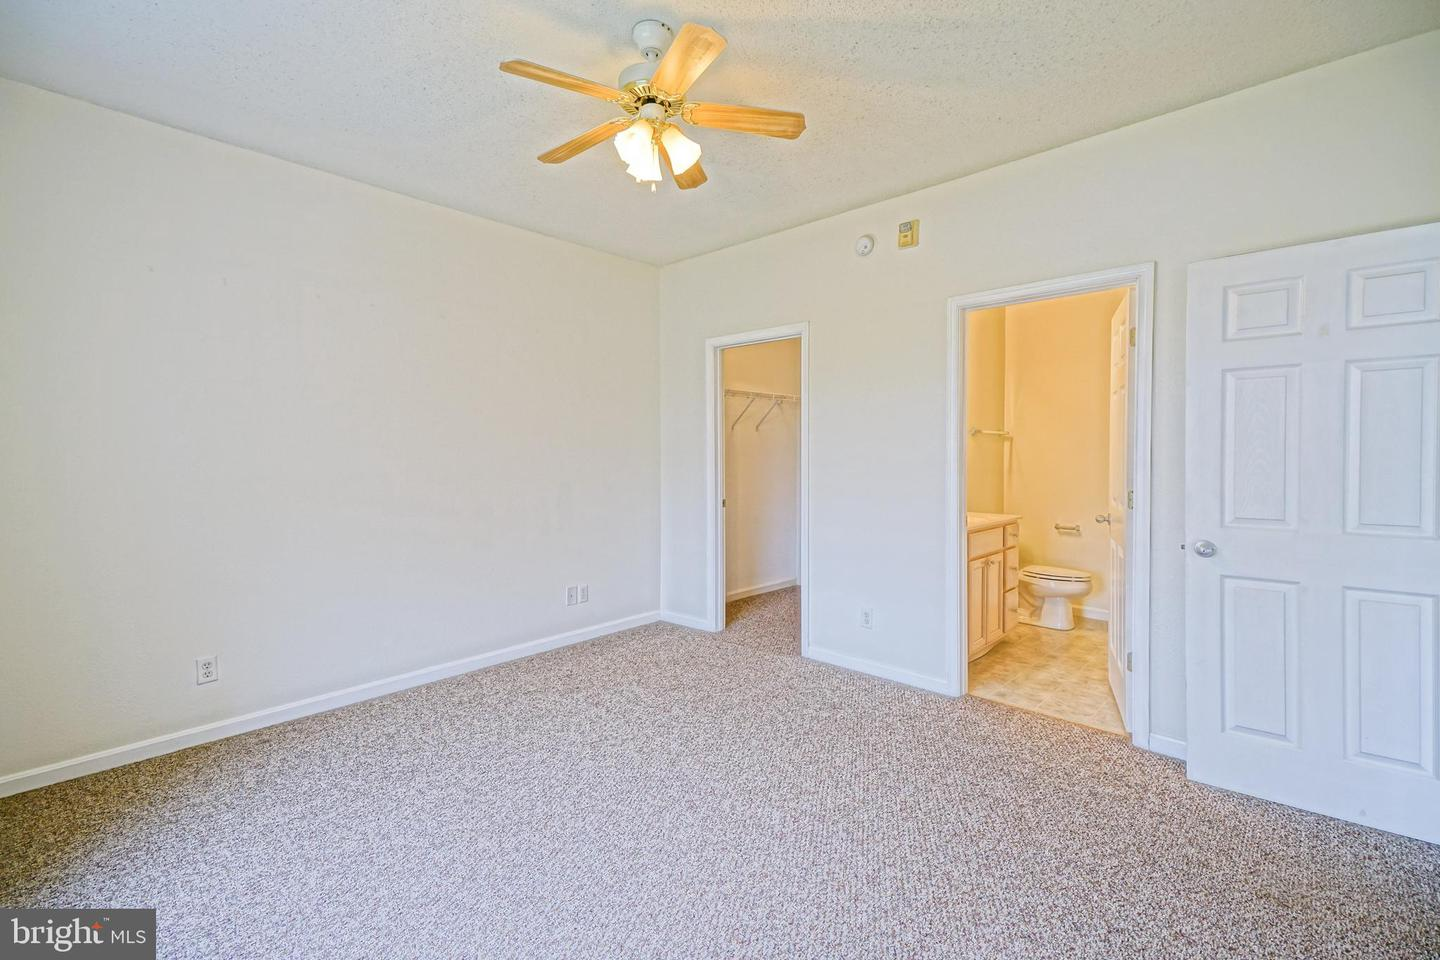 DESU139032-301664482963-2019-06-24-14-51-56 33156 N Village Loop #4202 | Lewes, DE Real Estate For Sale | MLS# Desu139032  - Lee Ann Group